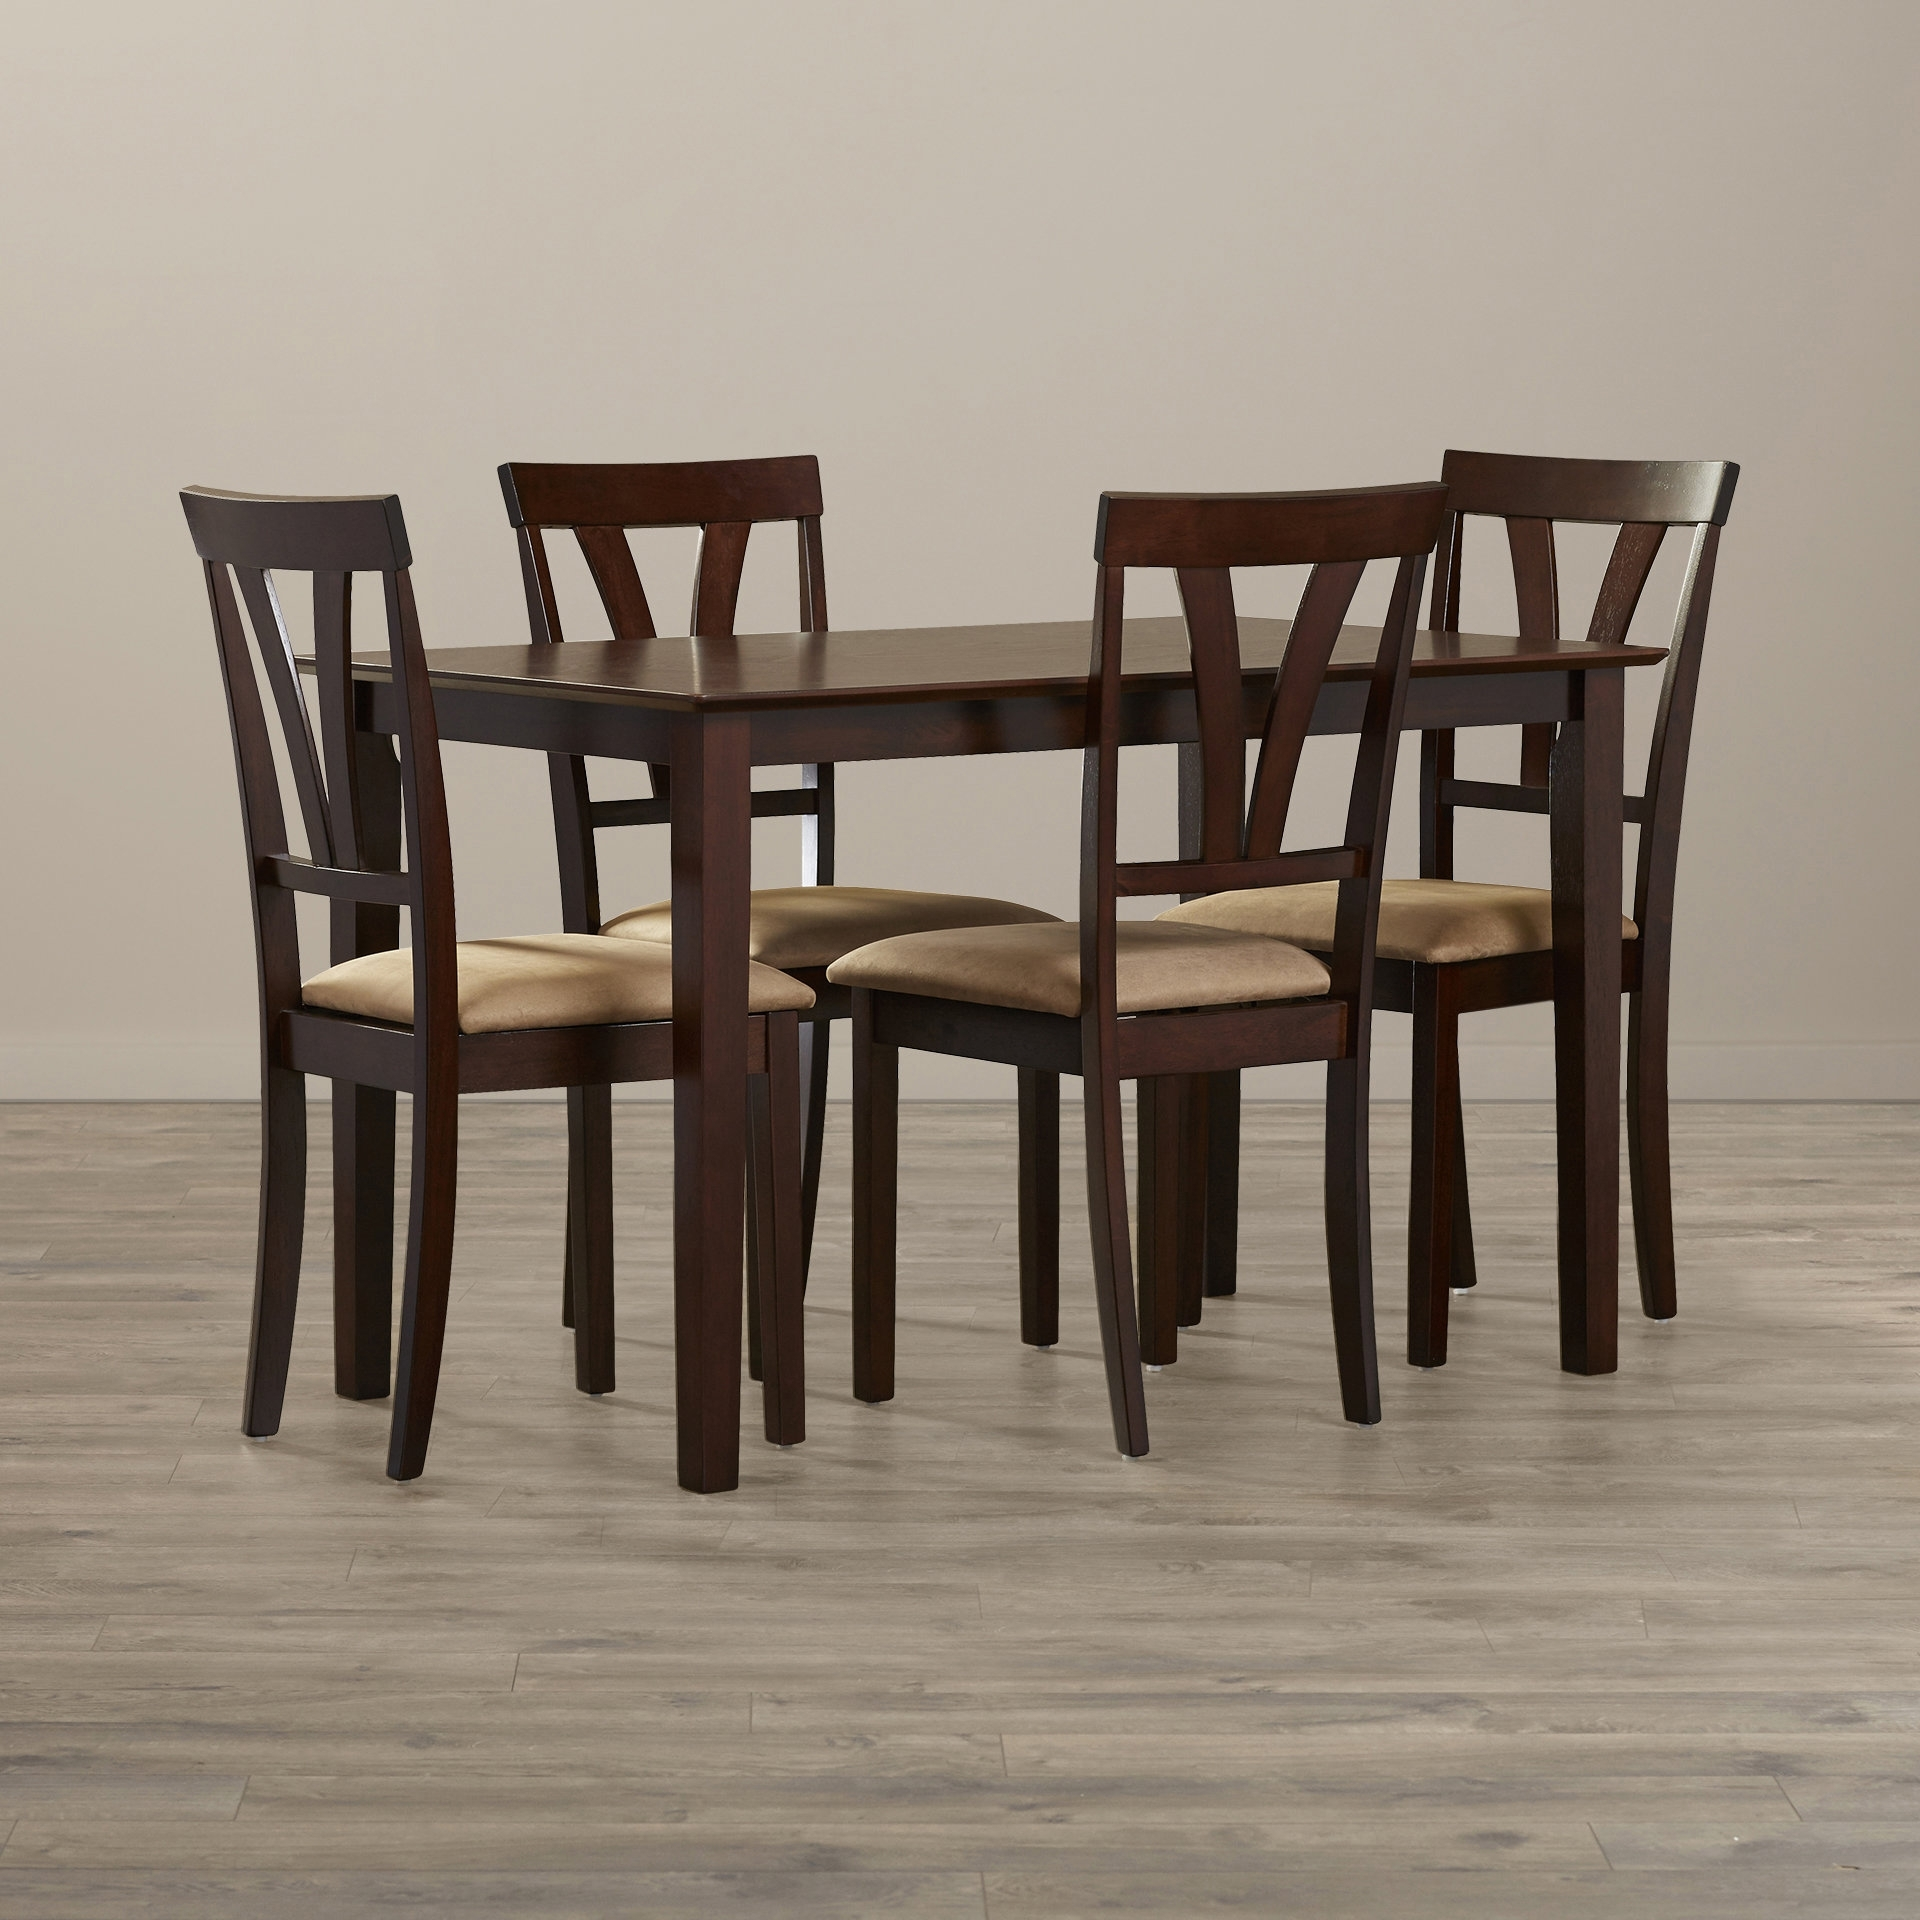 Wayfair With Regard To Market 6 Piece Dining Sets With Side Chairs (View 11 of 25)